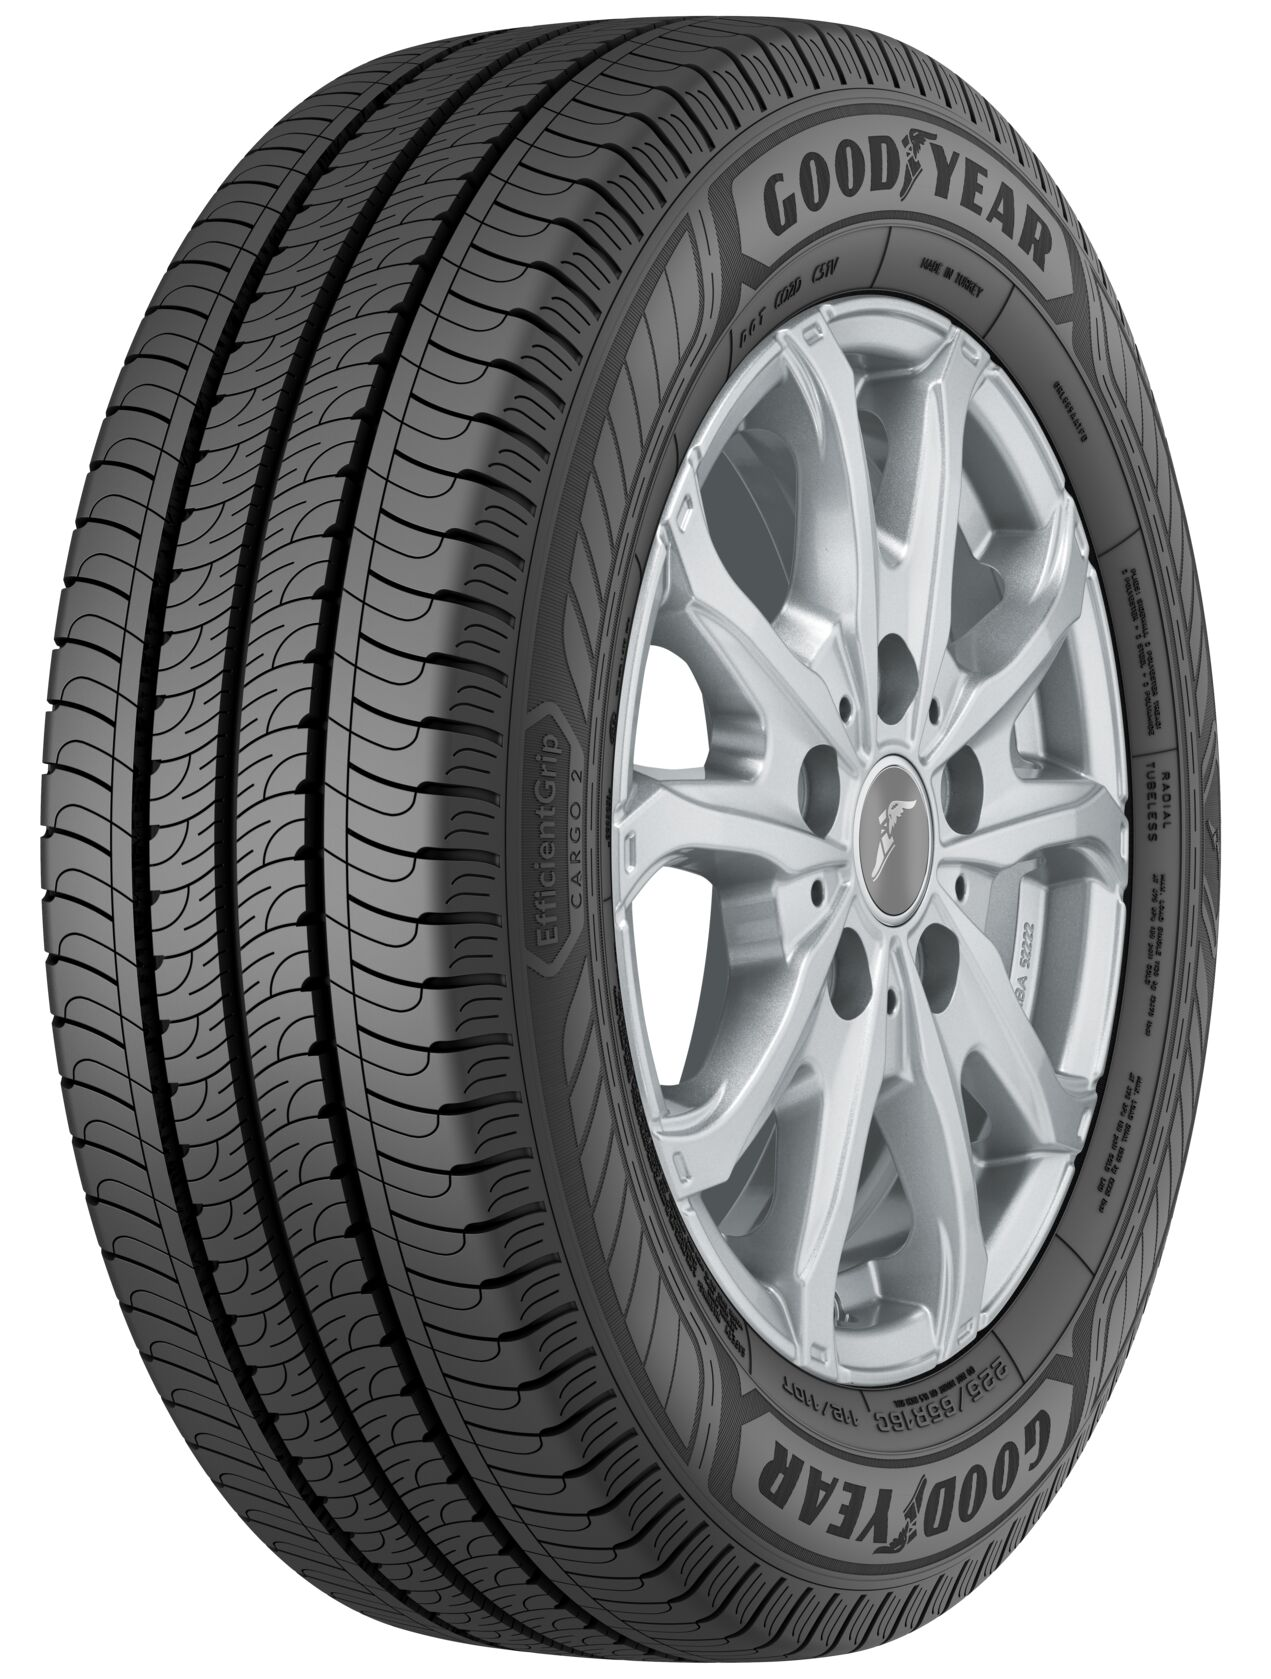 Gomme Nuove Goodyear 225/70 R15C 112S Efficientgrip Cargo 2 M+S pneumatici nuovi All Season